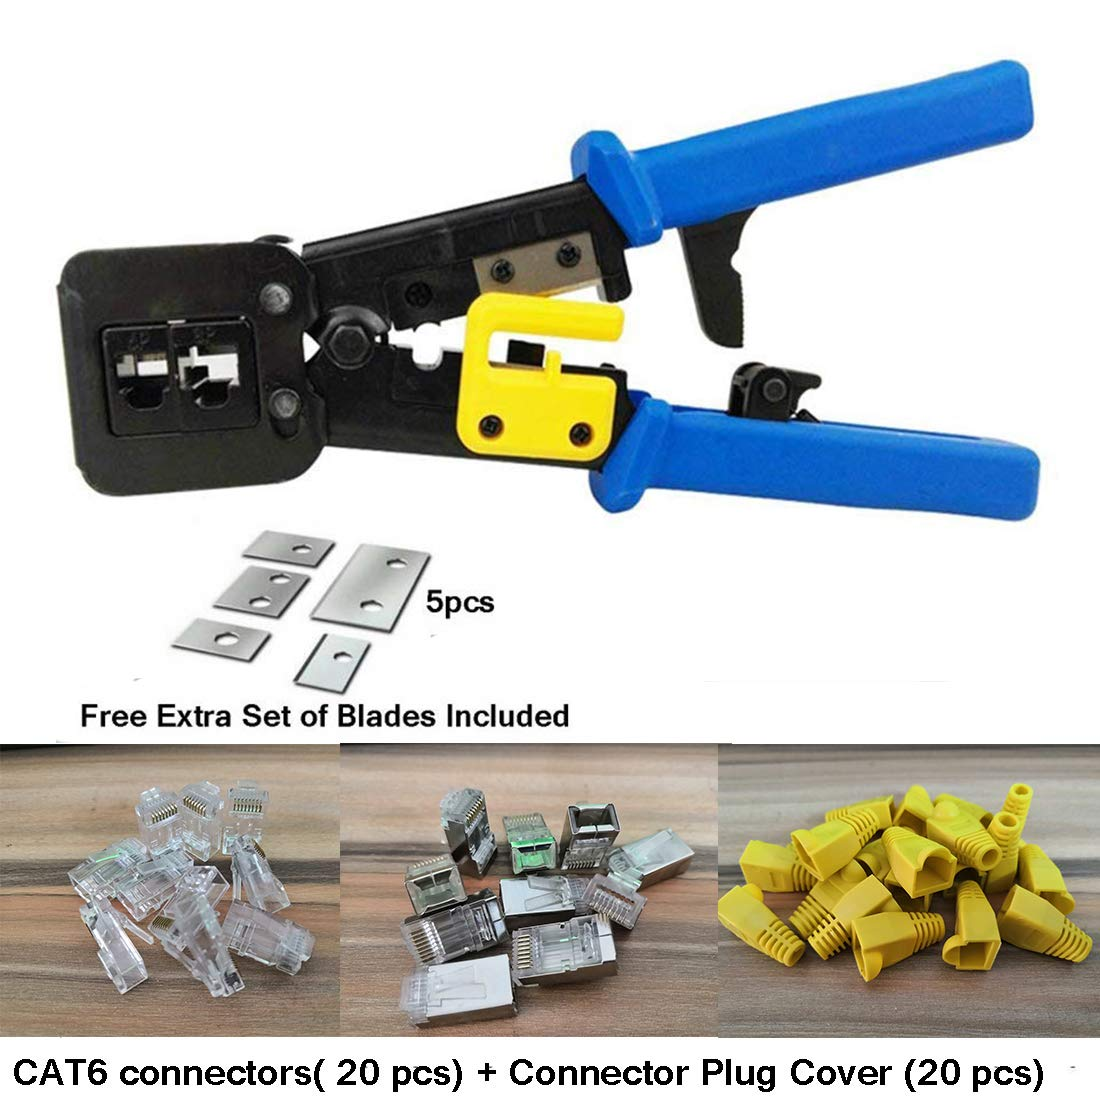 RJ45 Crimp Tool 6P 8P Multi-function Cable Cutter Pass Through Crimper Ethernet Cable Connector Crimping Tool Ratcheting Hand Tools Bonus CAT6 Connector 20 Pack by Ewans (Image #1)